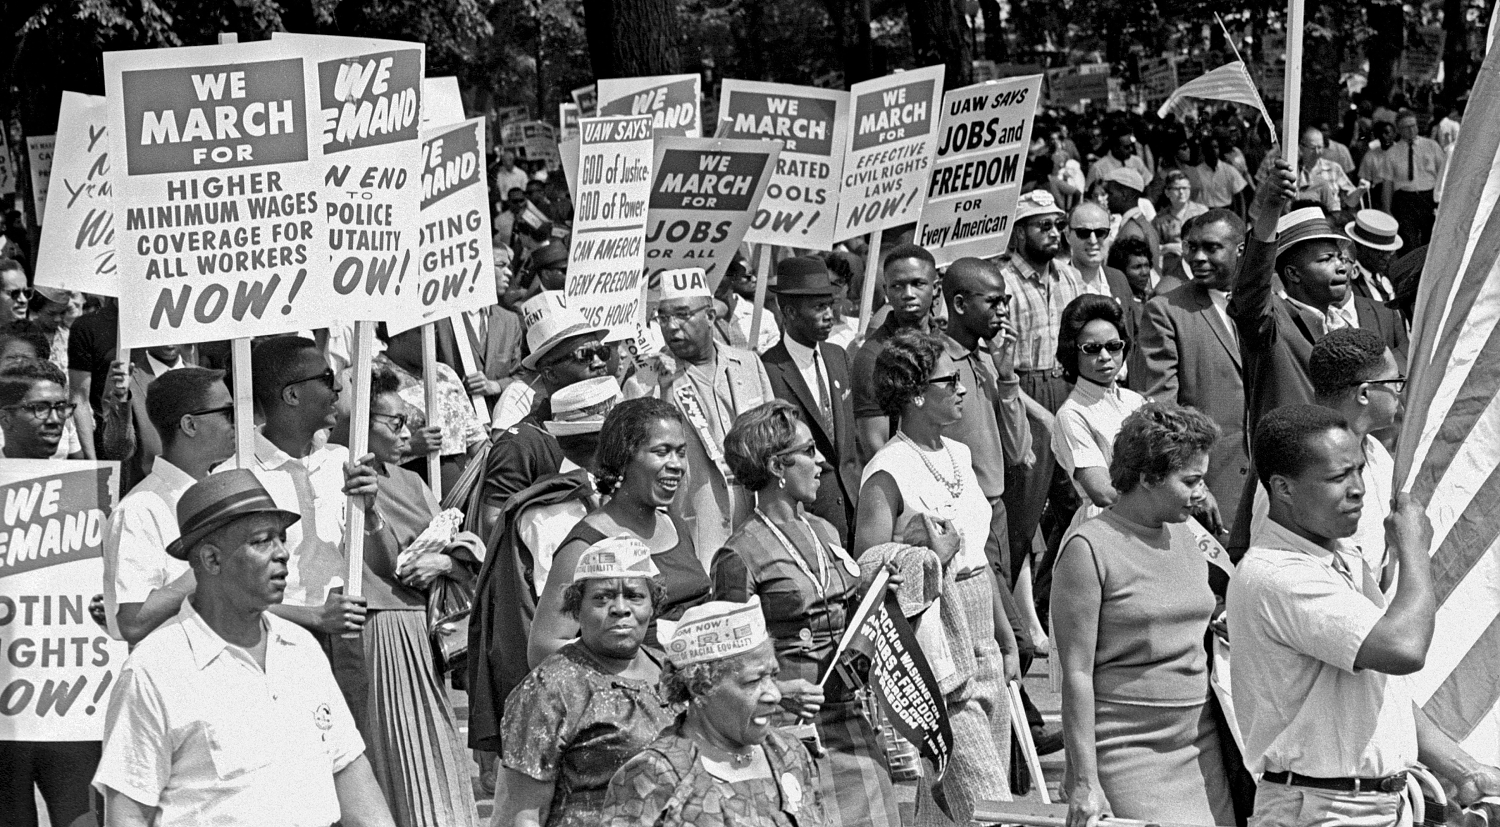 race and civil rights Tags: caucasian-race, civil-rights-movement, ethnology, identity-politics, martin- luther-king-jr, perjury, race, sexism, skin-colour, united-states-elections-2008,.